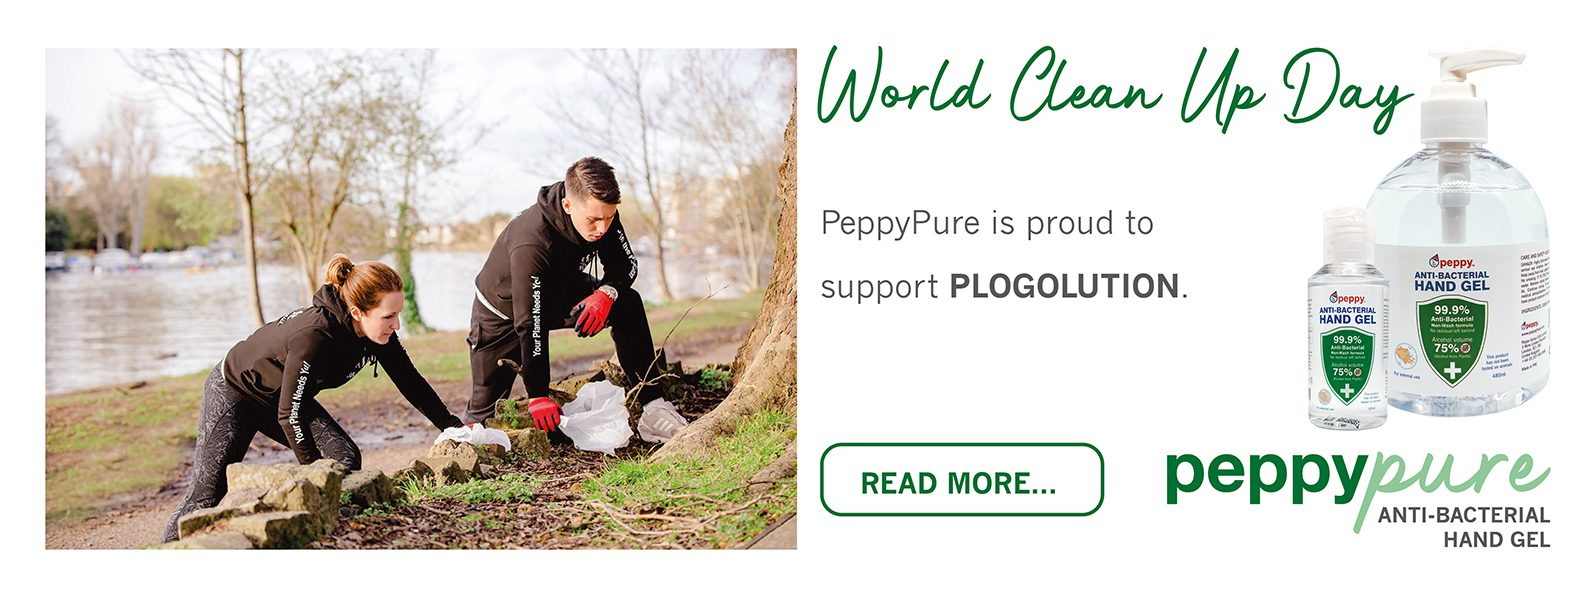 PeppyPure supports Plogolution